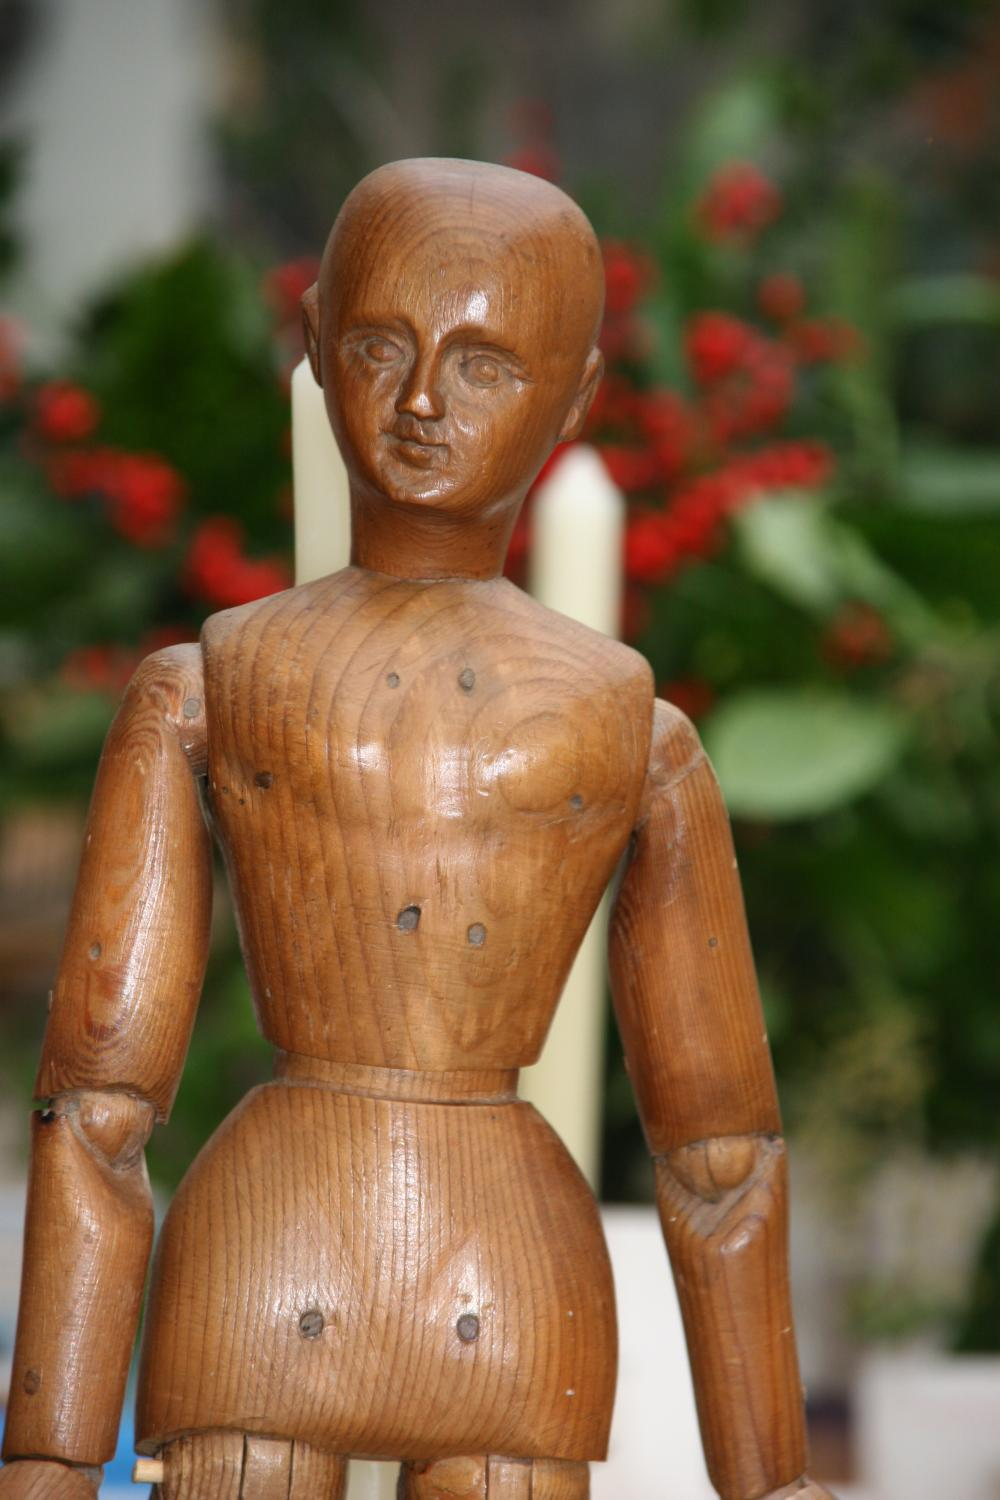 19thc wooden articulated artist's lay model ,